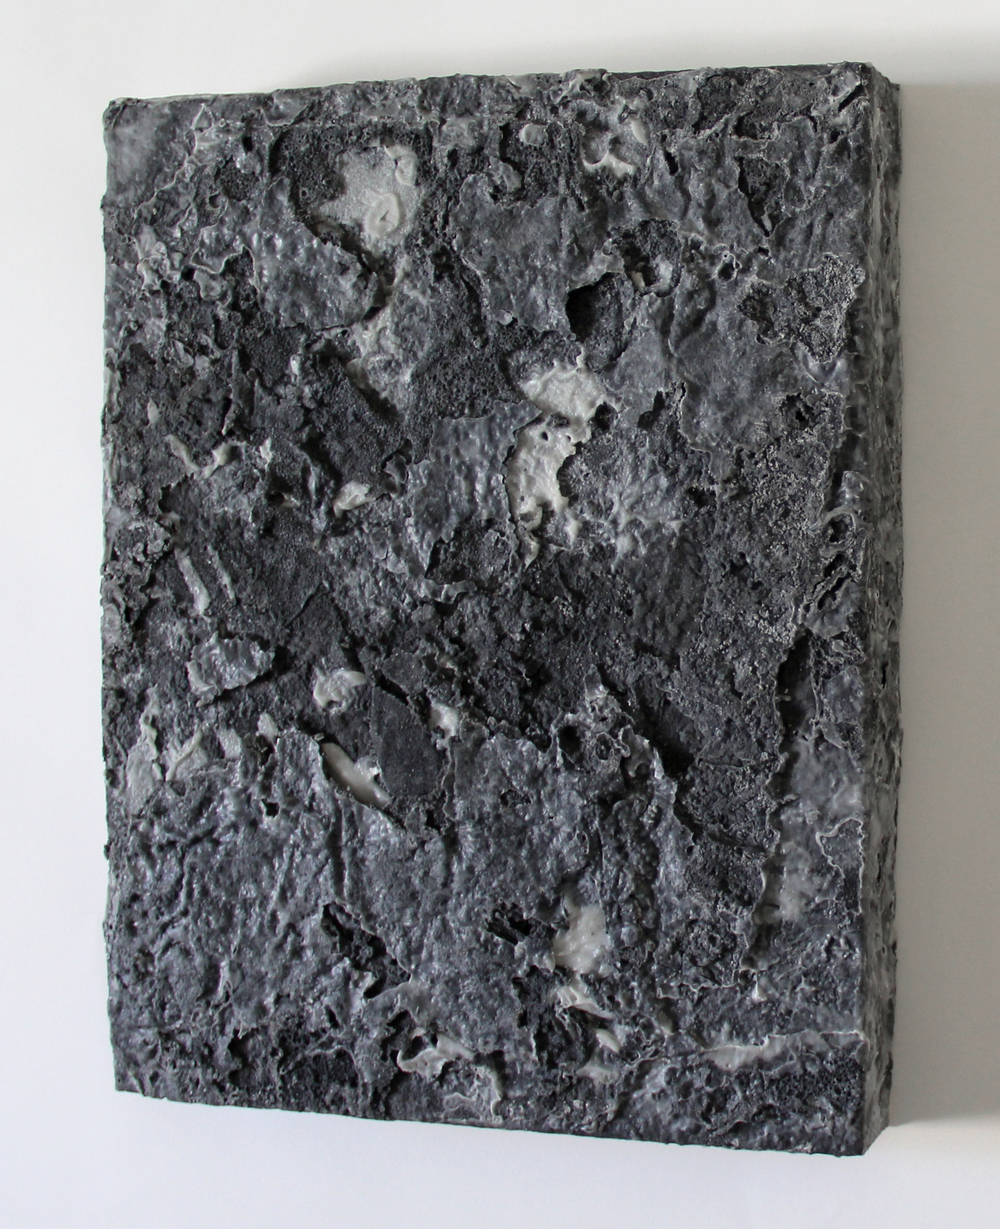 graphite4   2014   graphite, sugar, acrylic on wood   14 x 11 x 0.75 inches